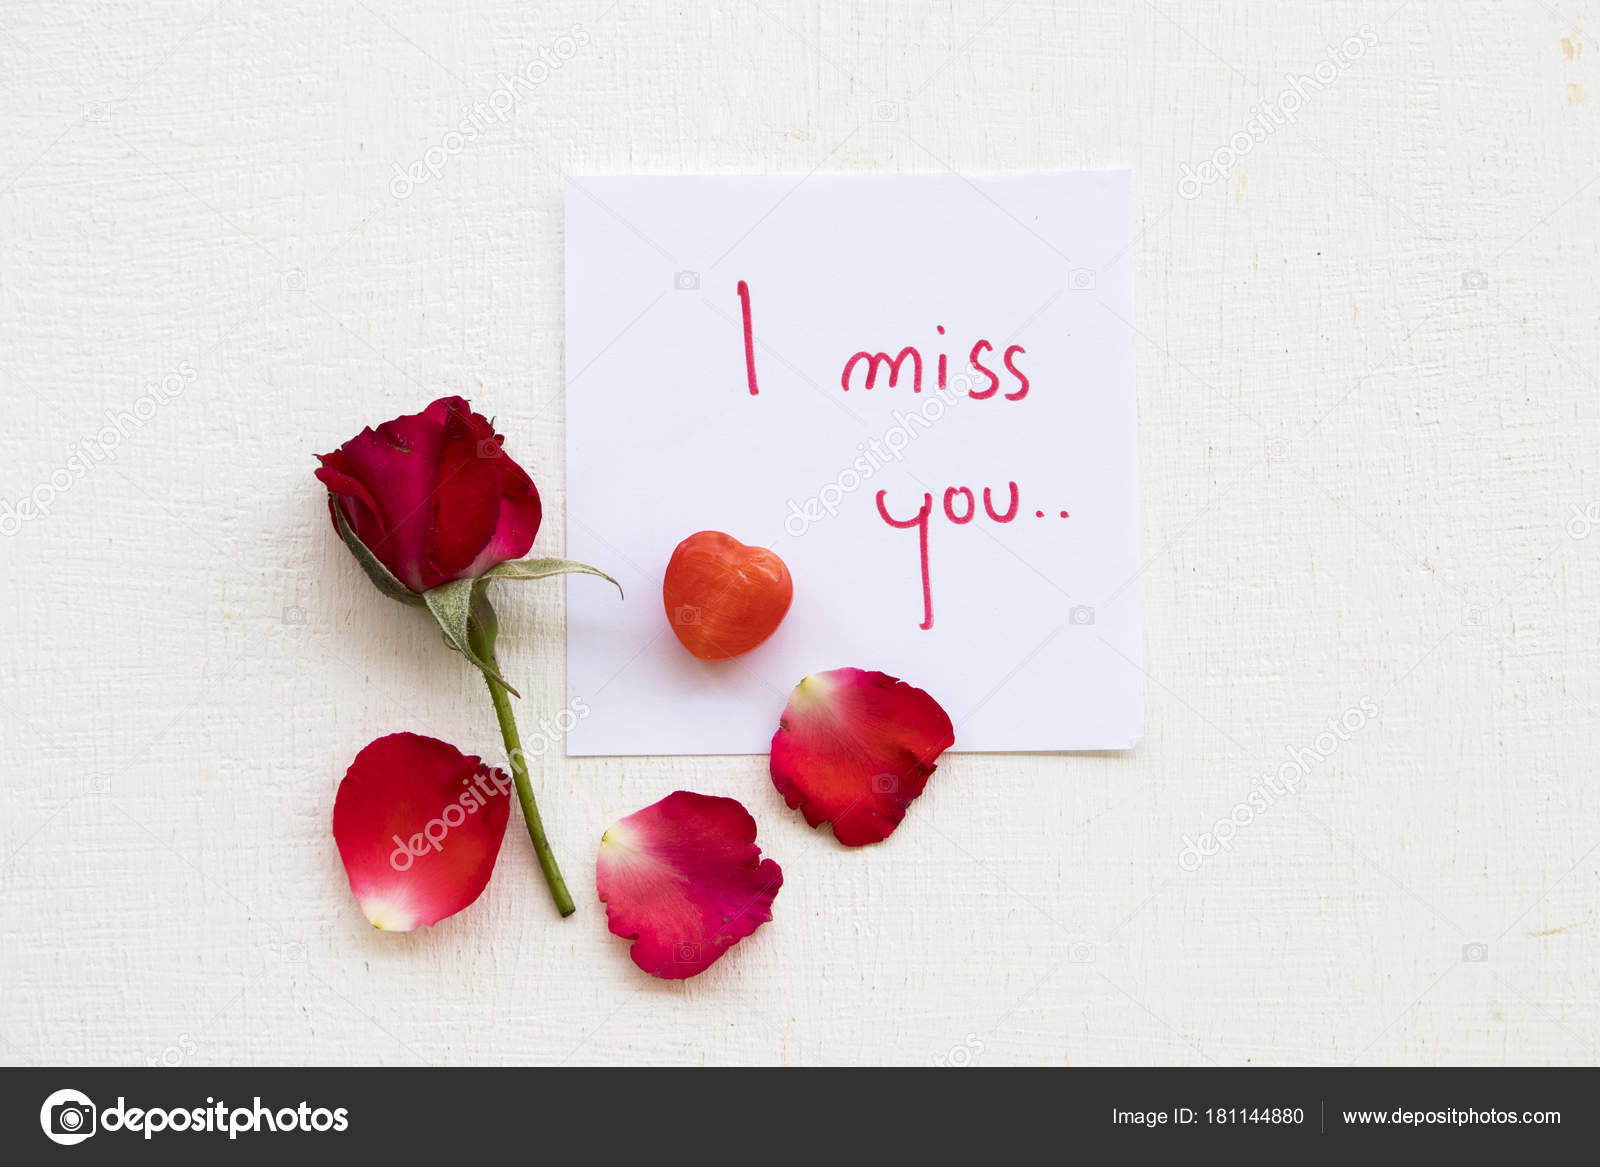 Miss you message card red rose background white stock photo miss you message card red rose background white stock photo m4hsunfo